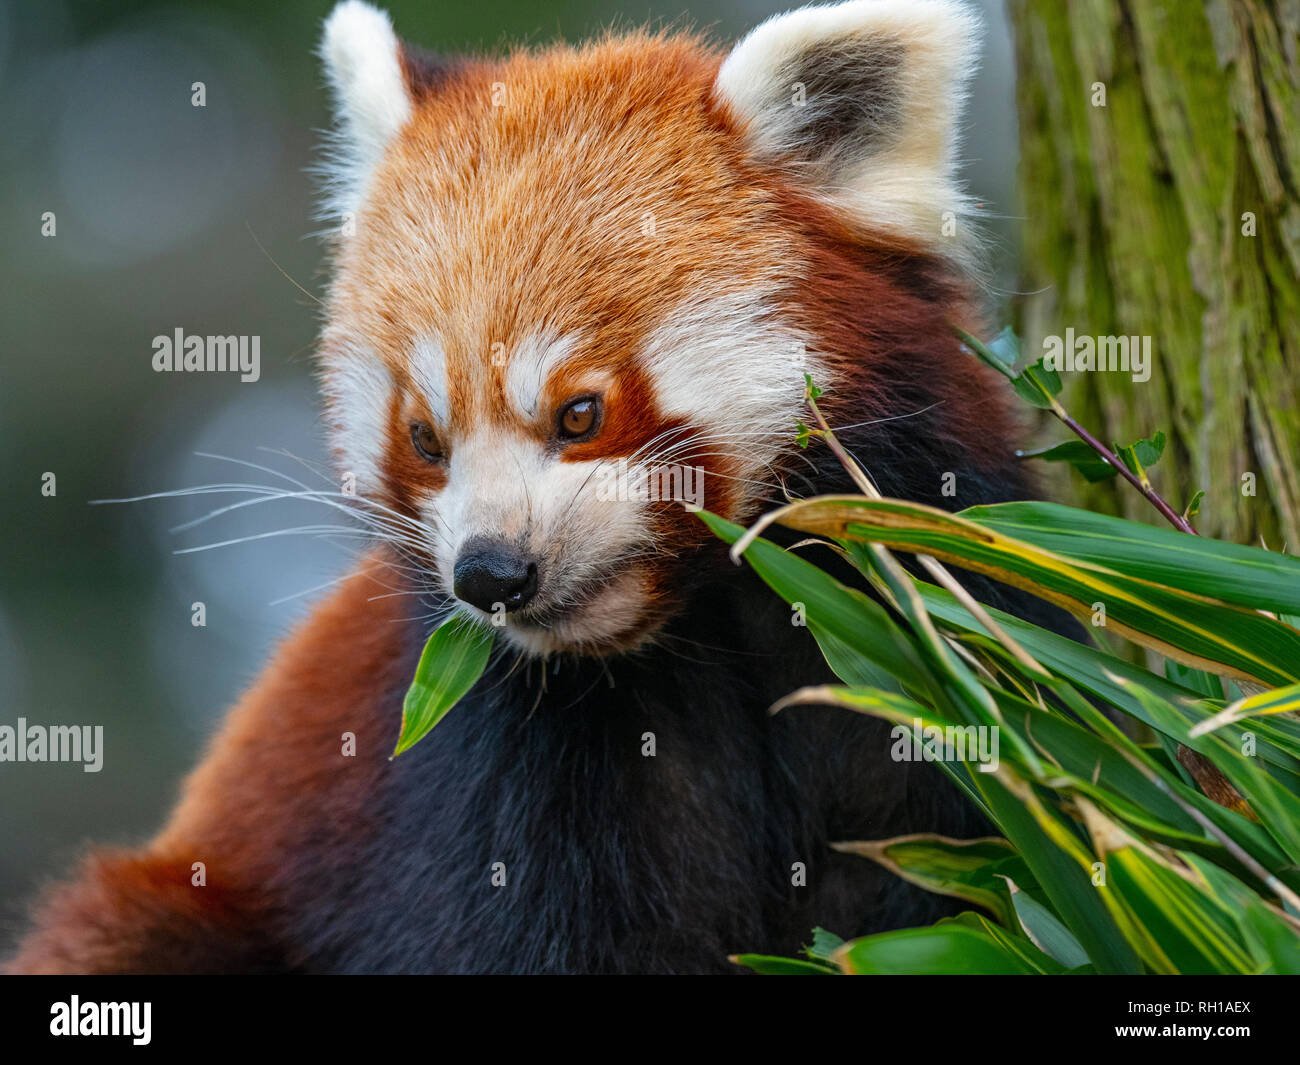 Red panda Ailurus fulgens  feeding on bamboo leaves captive portrait - Stock Image